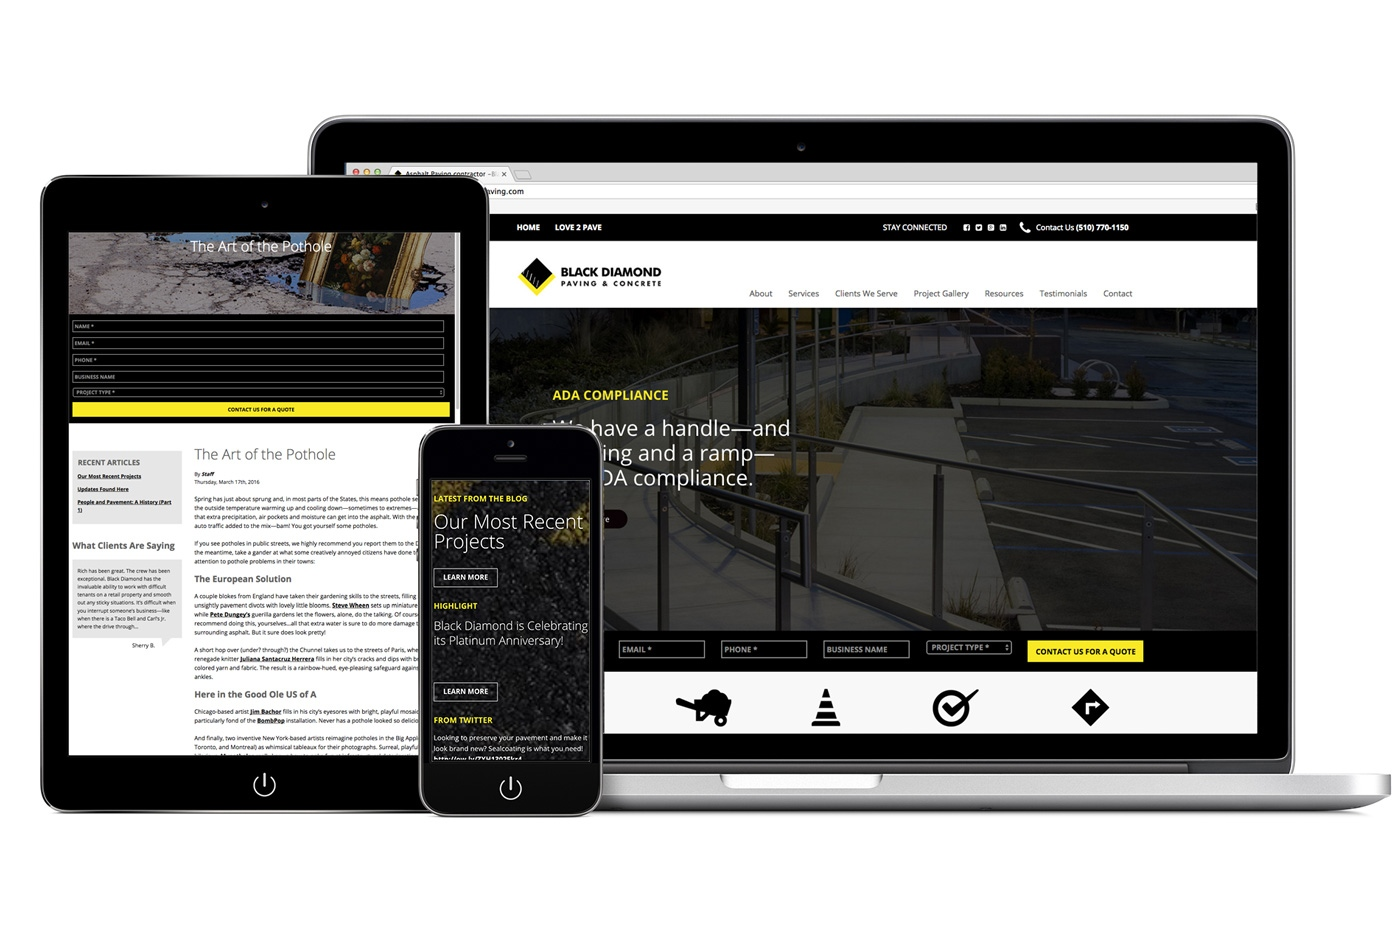 Black Diamond Paving Website Design showing various web pages on laptop, tablet, and mobile